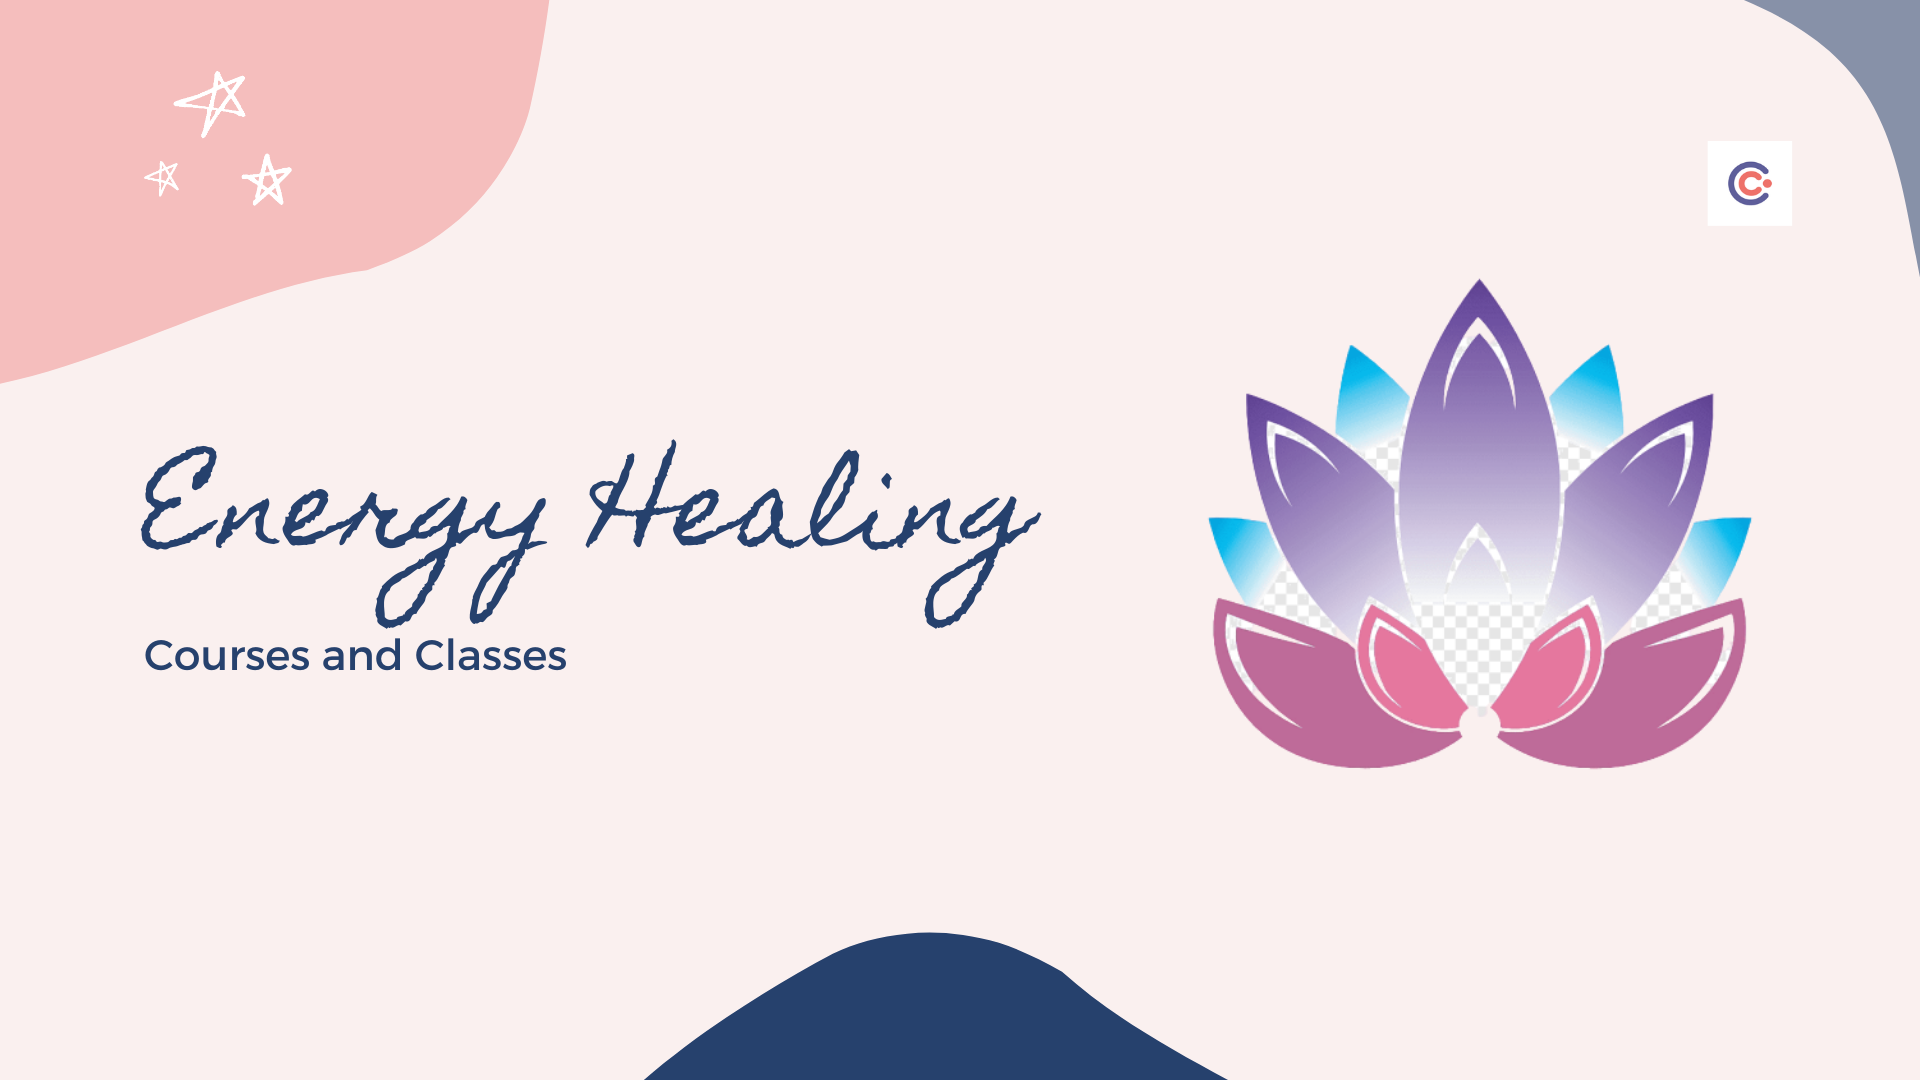 6 Best Energy Healing  Courses and Classes - Learn Energy Healing Online